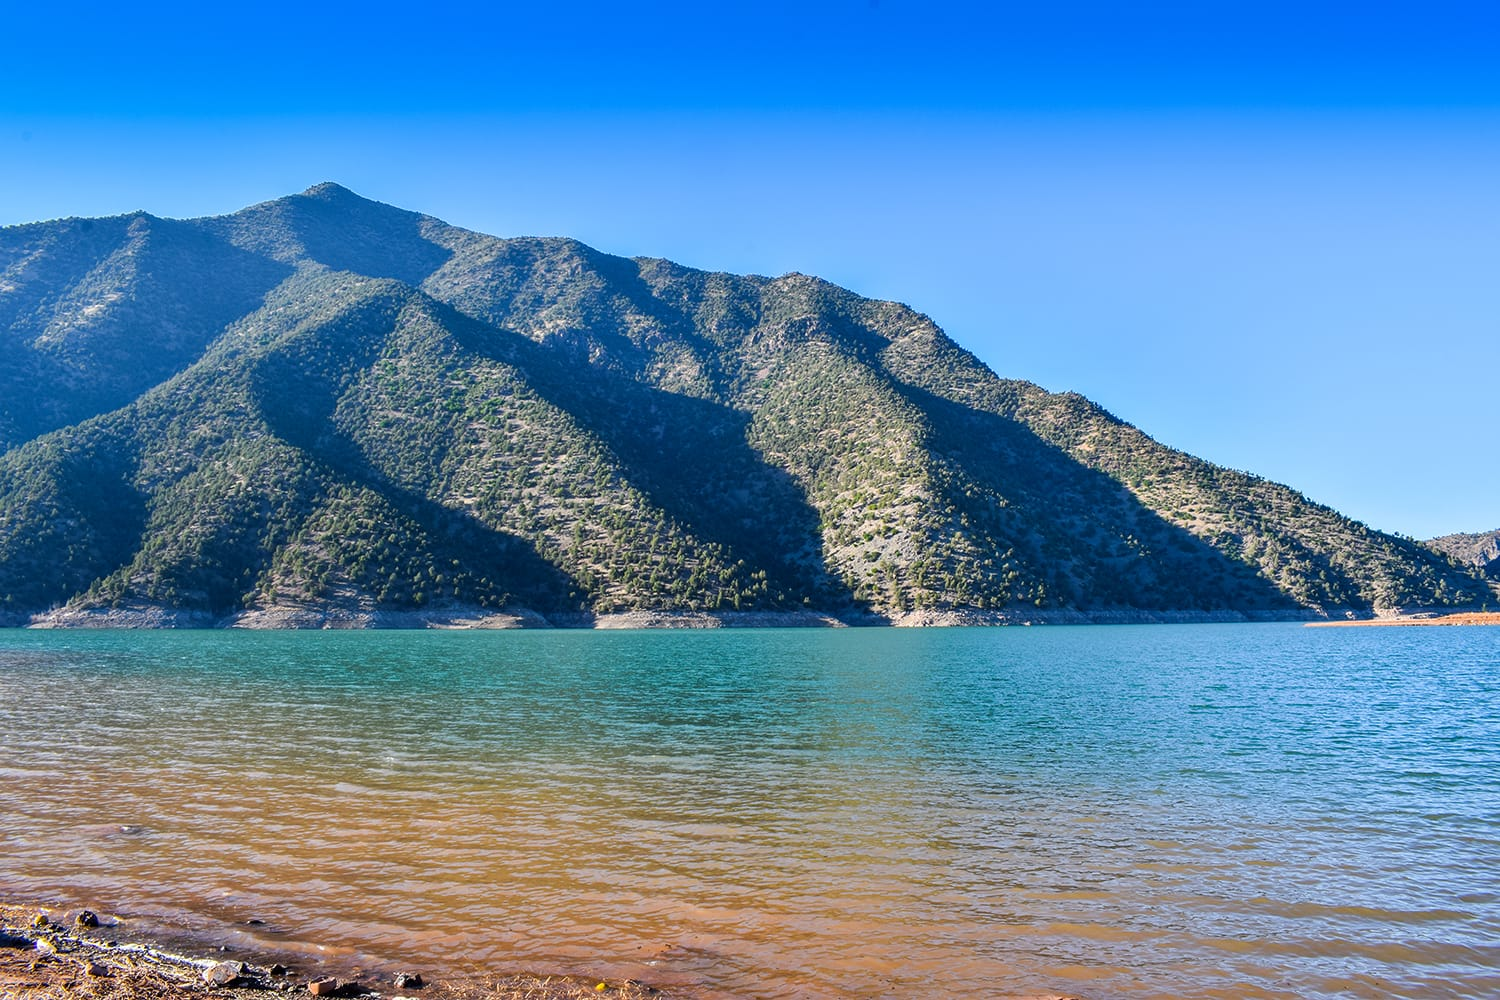 Panoramic View of Ouirgane Lake in Morocco